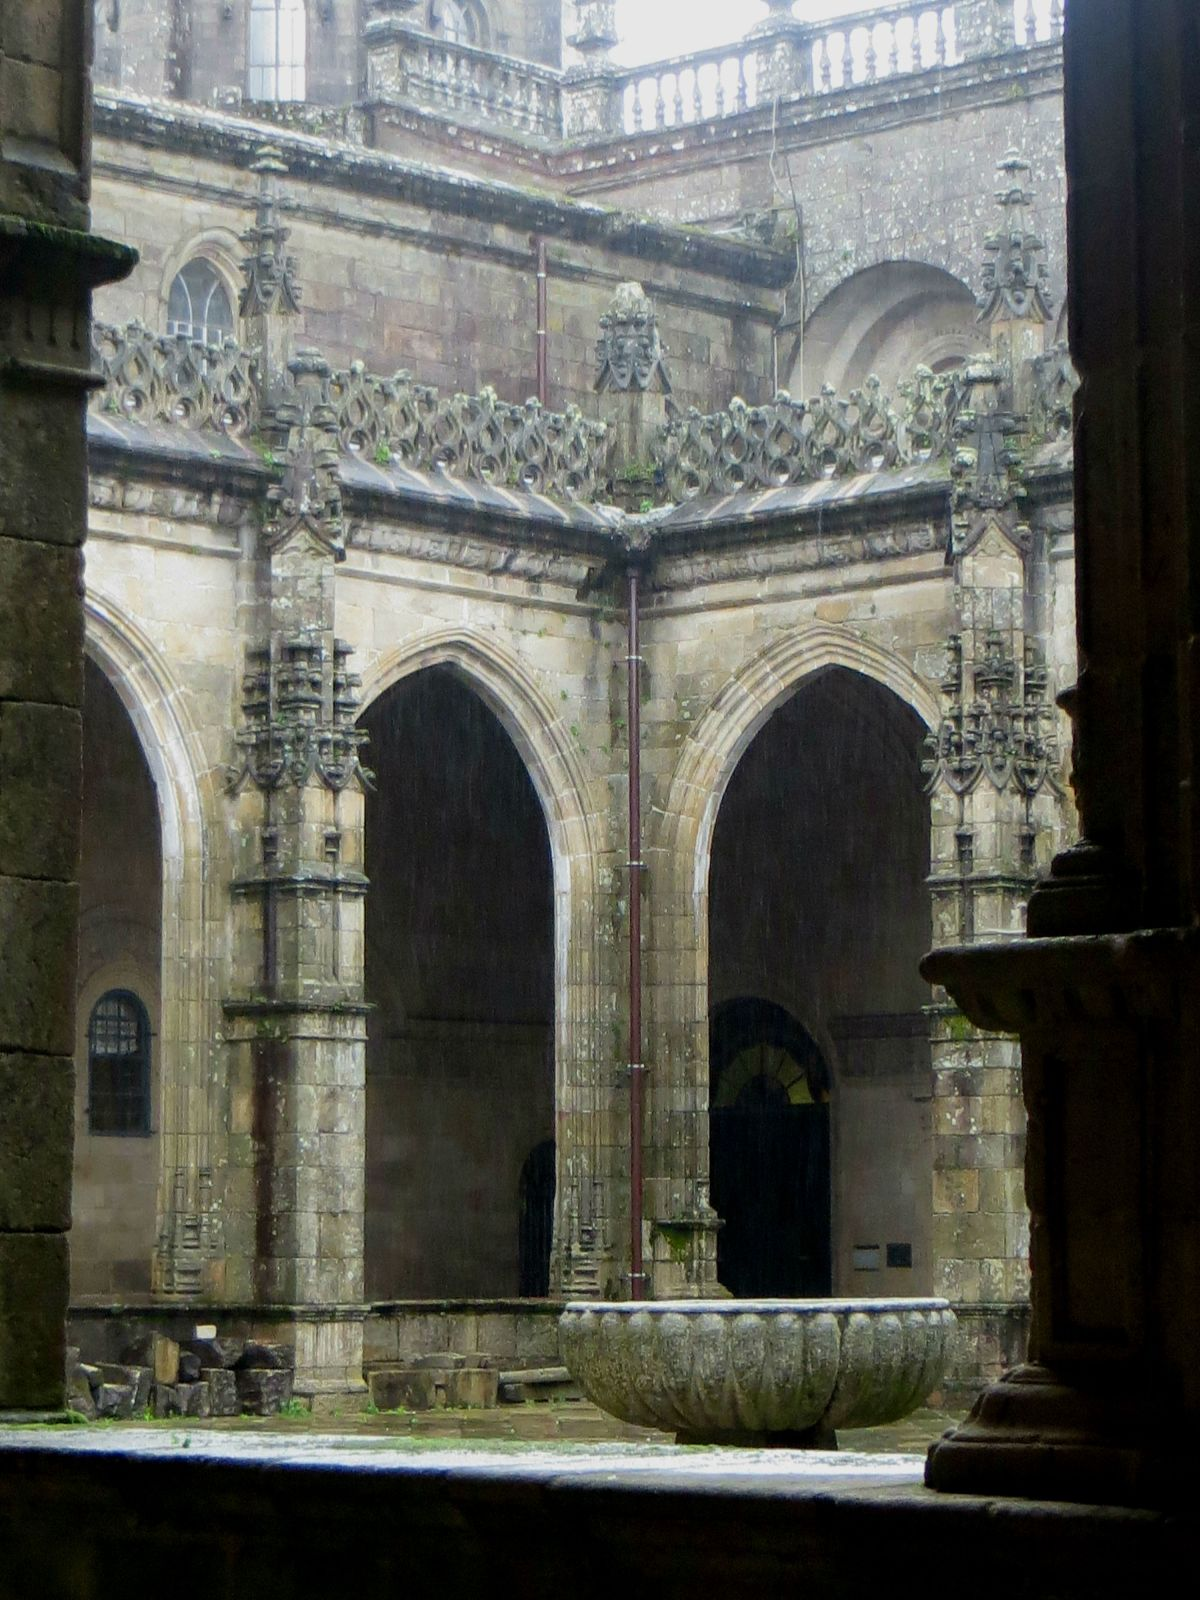 The Cloister of the Cathedral